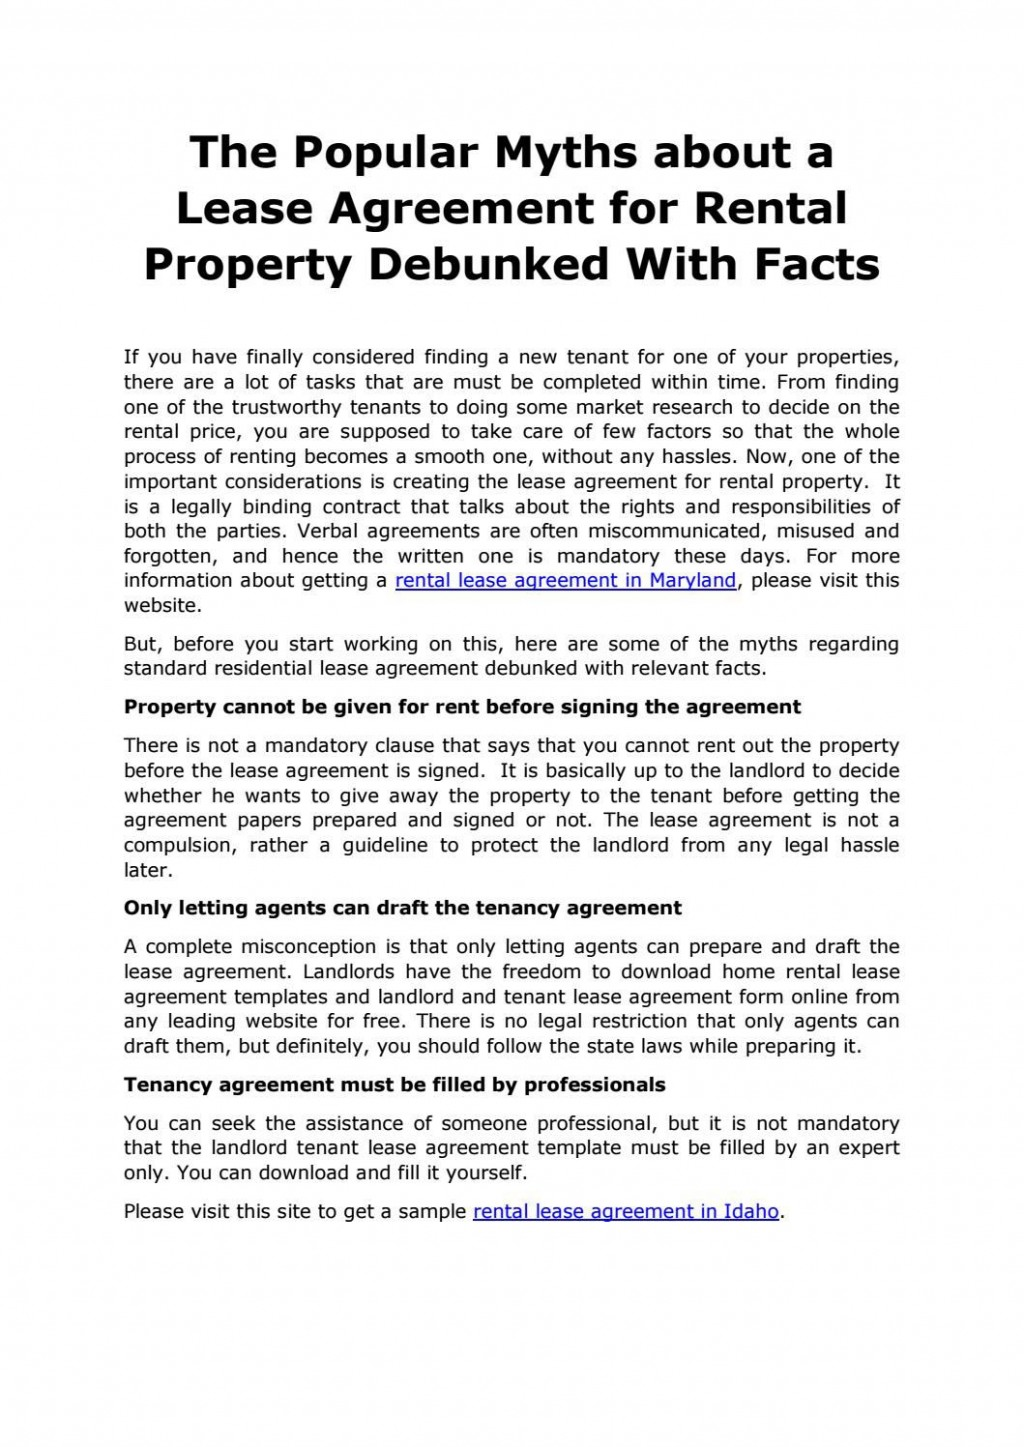 007 Amazing Rental Lease Template Free Download Inspiration  California Agreement Florida Word FormatLarge